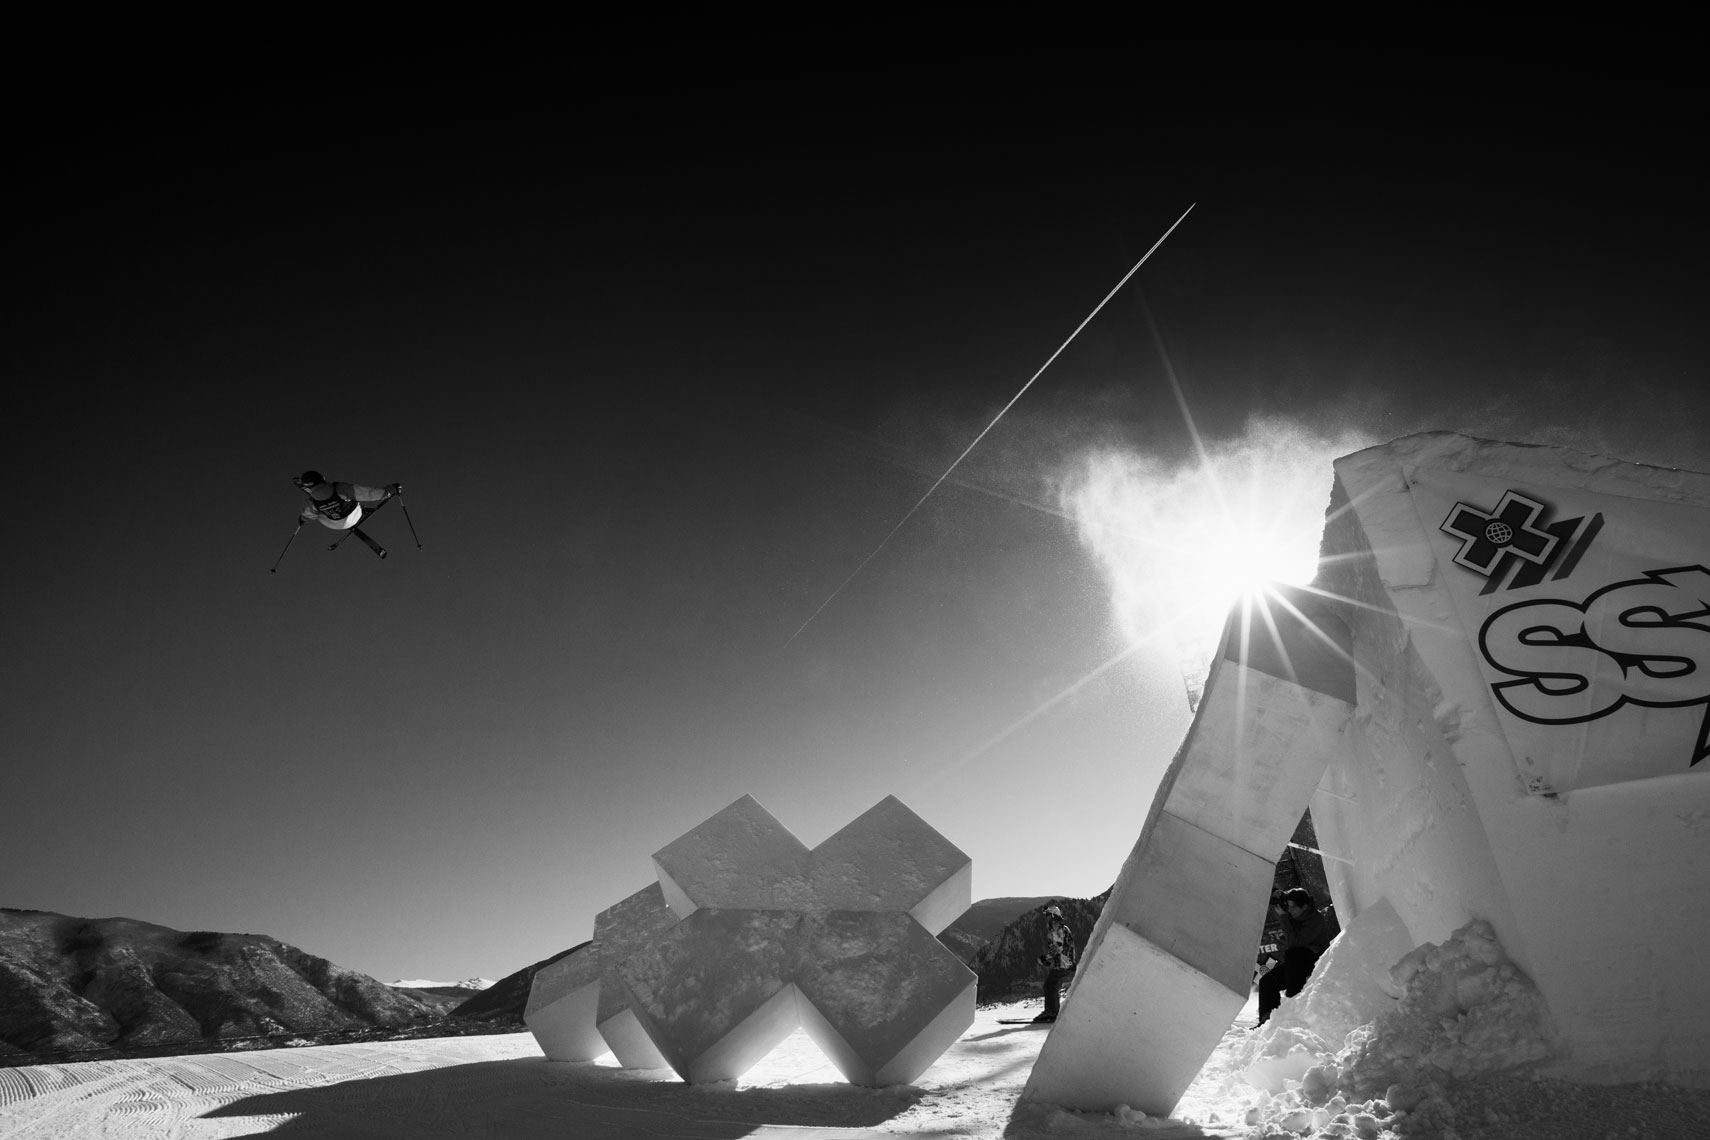 Winter X Games Action Sports Photographer